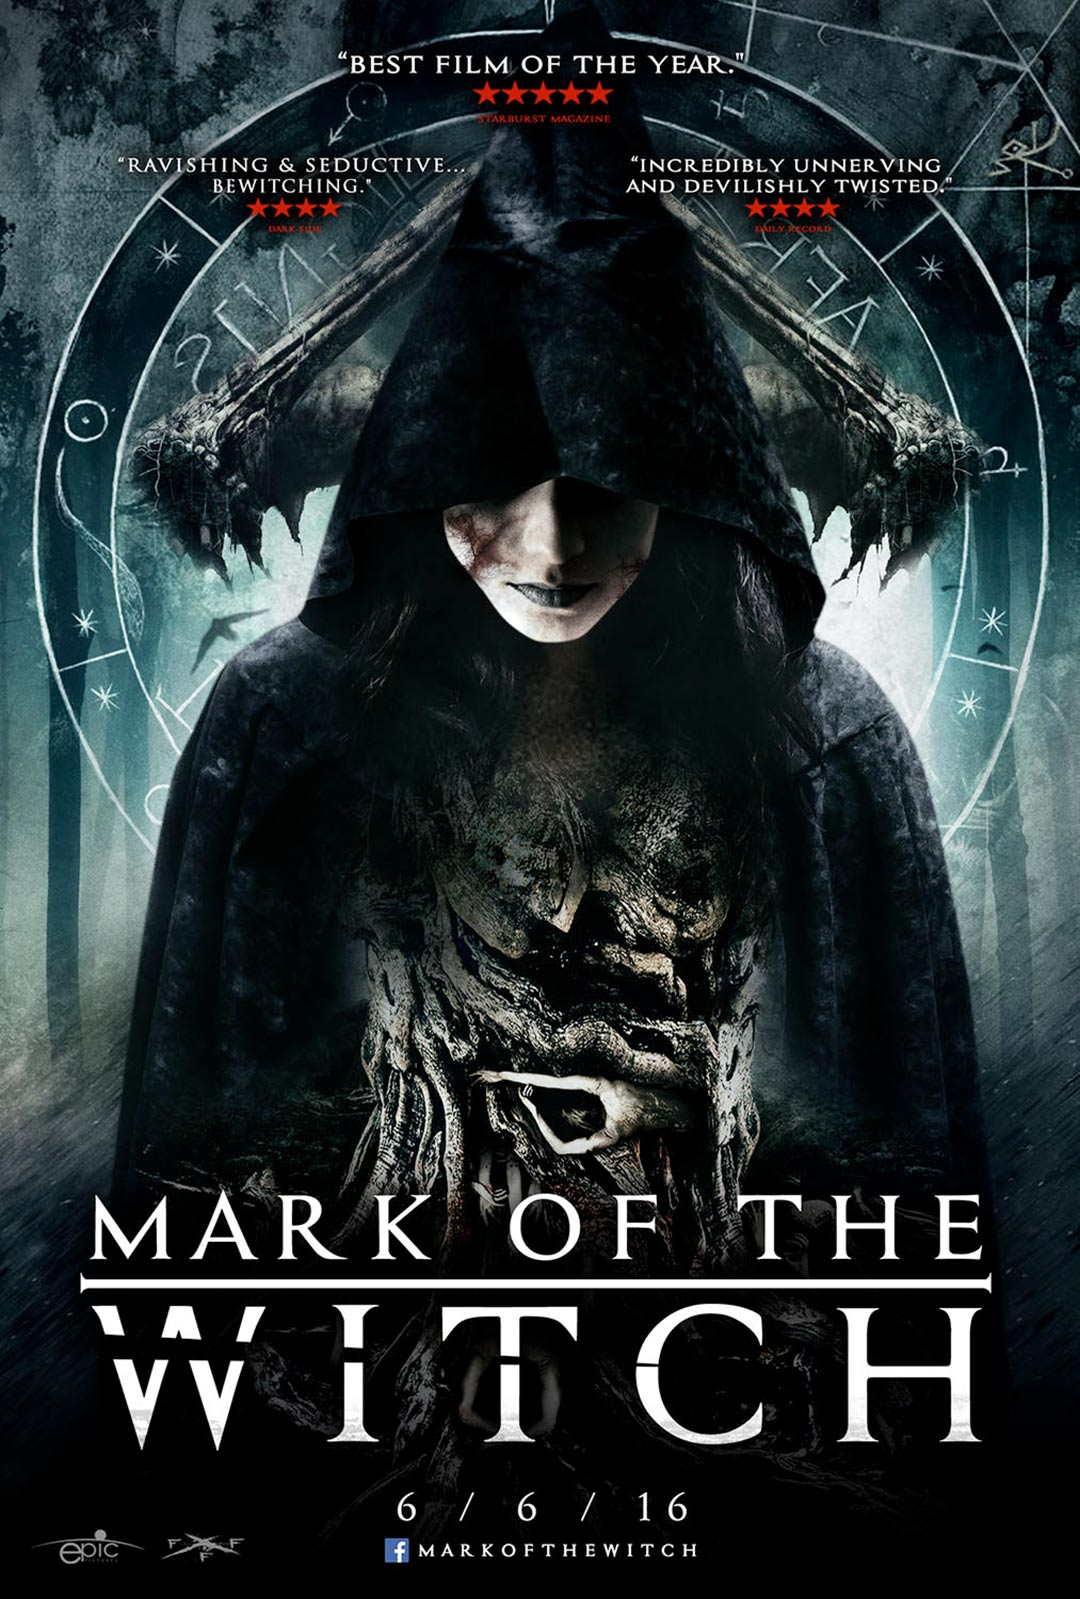 Mark Of The Witch 2016 Poster 1 - Trailer Addict-8253